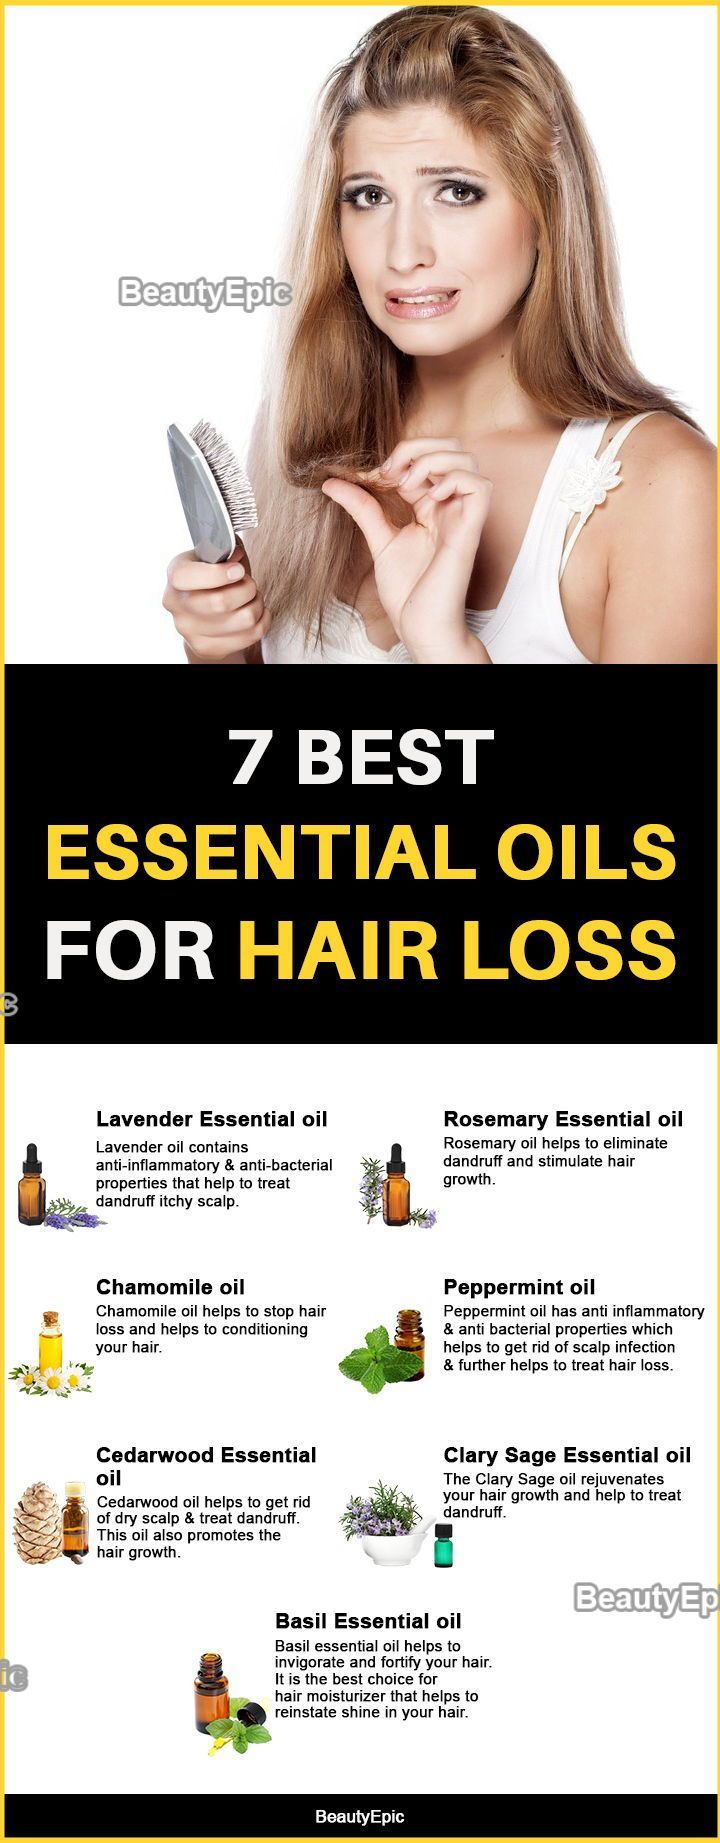 Important Oils for Hair Loss: Advantages and The right way to Use